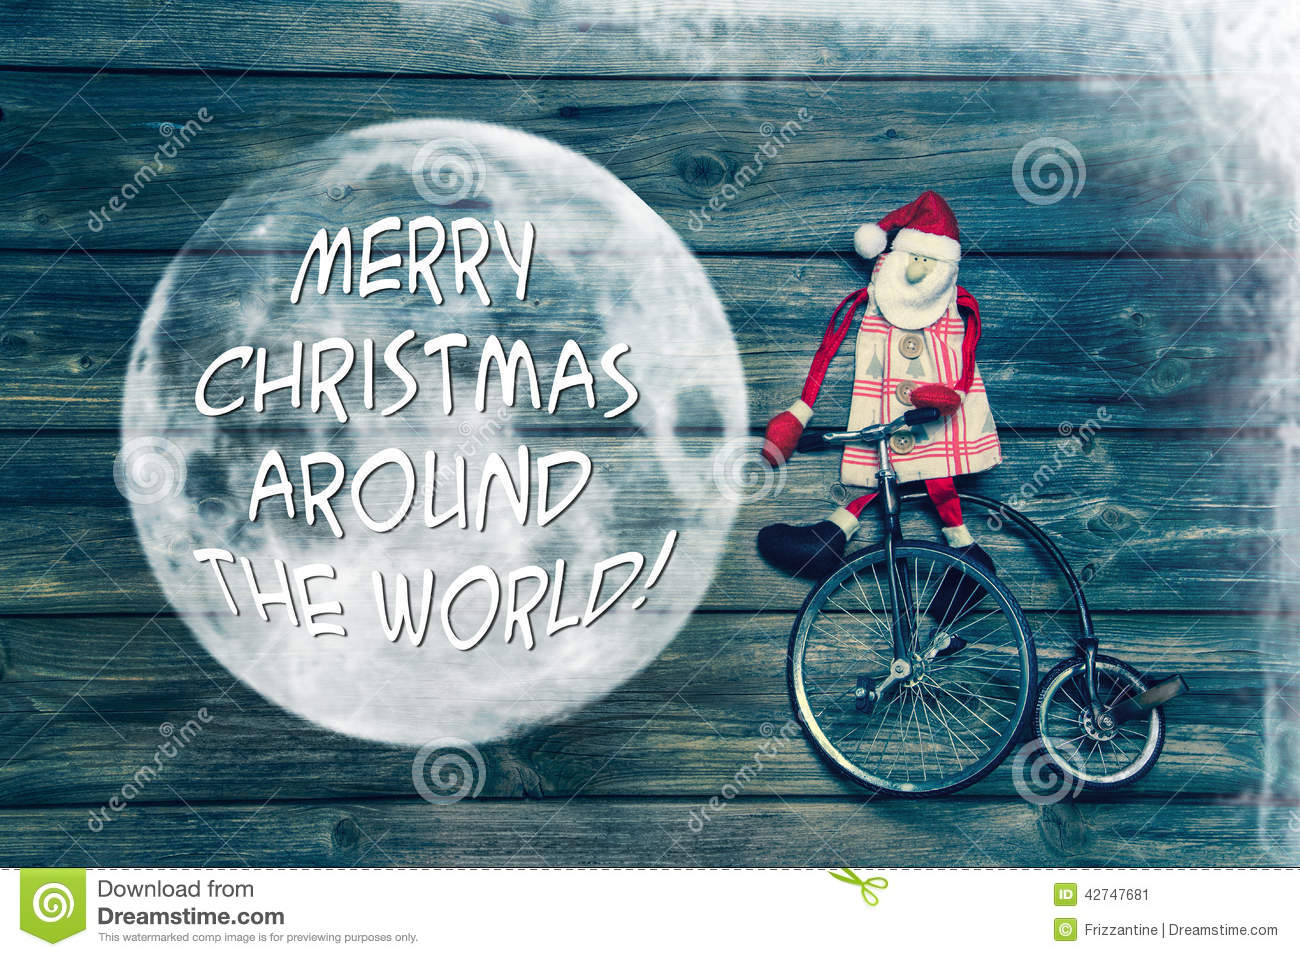 Merry Christmas Around The World - Greeting Card With Text Decor Stock Photo - Image: 42747681